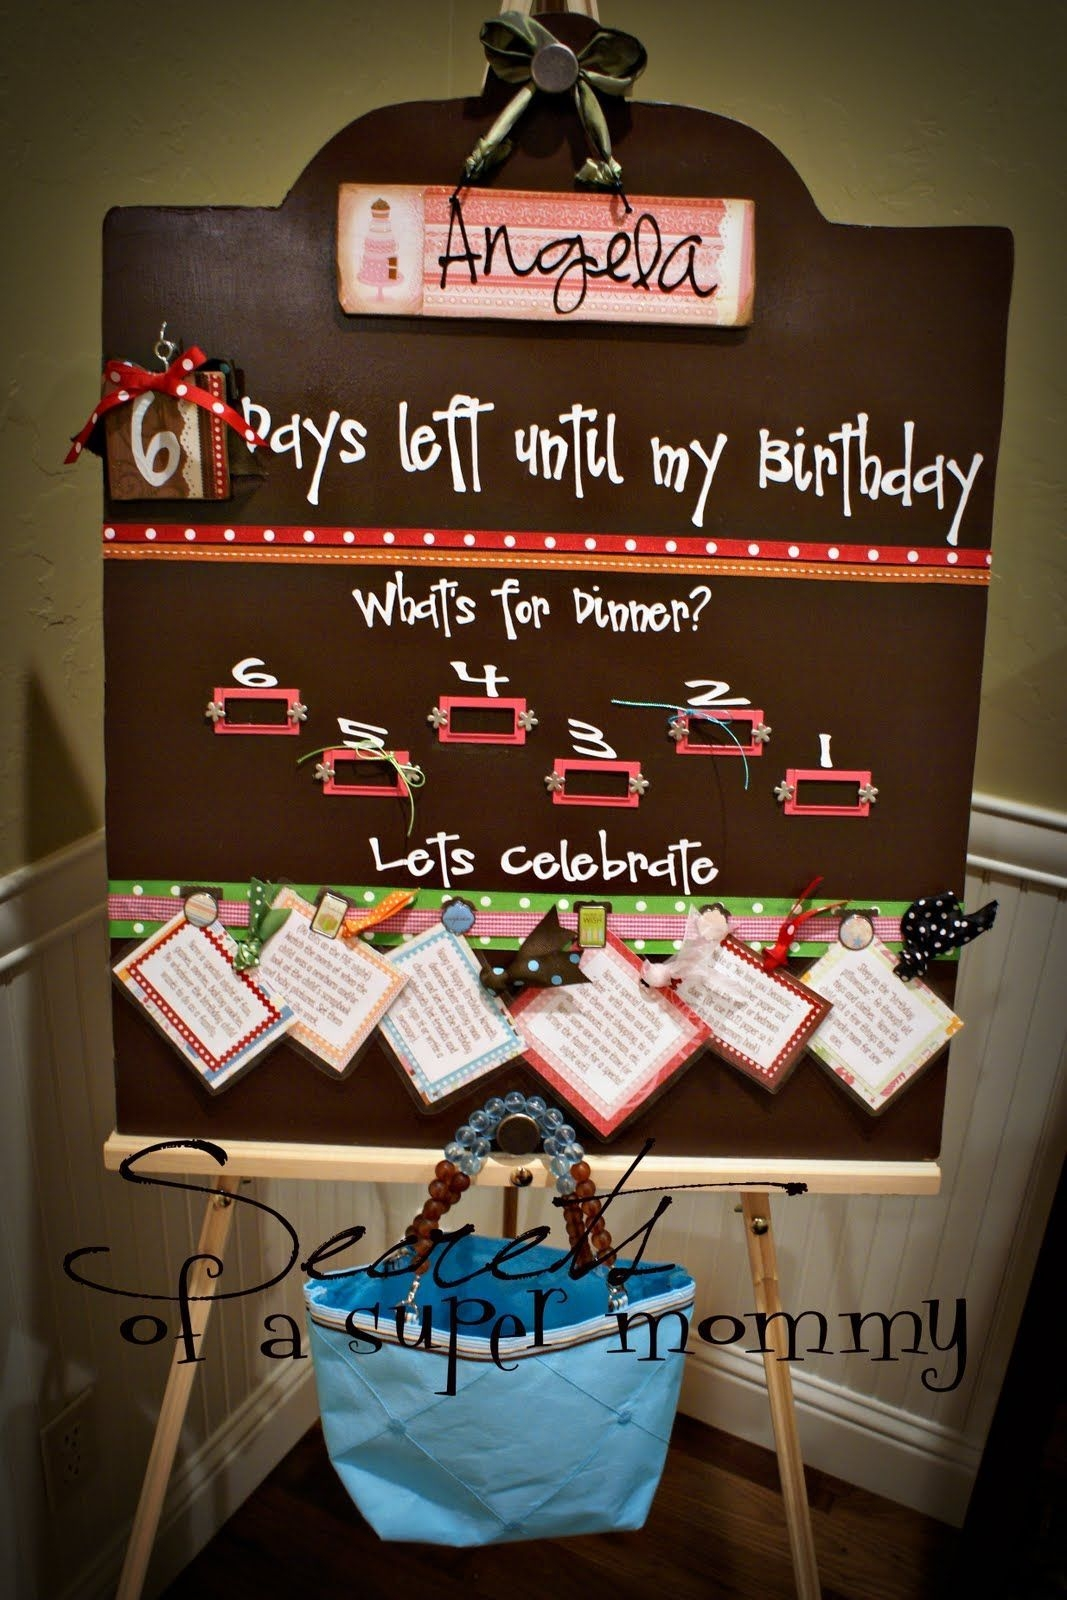 secrets of a super mommy: the birthday countdown board